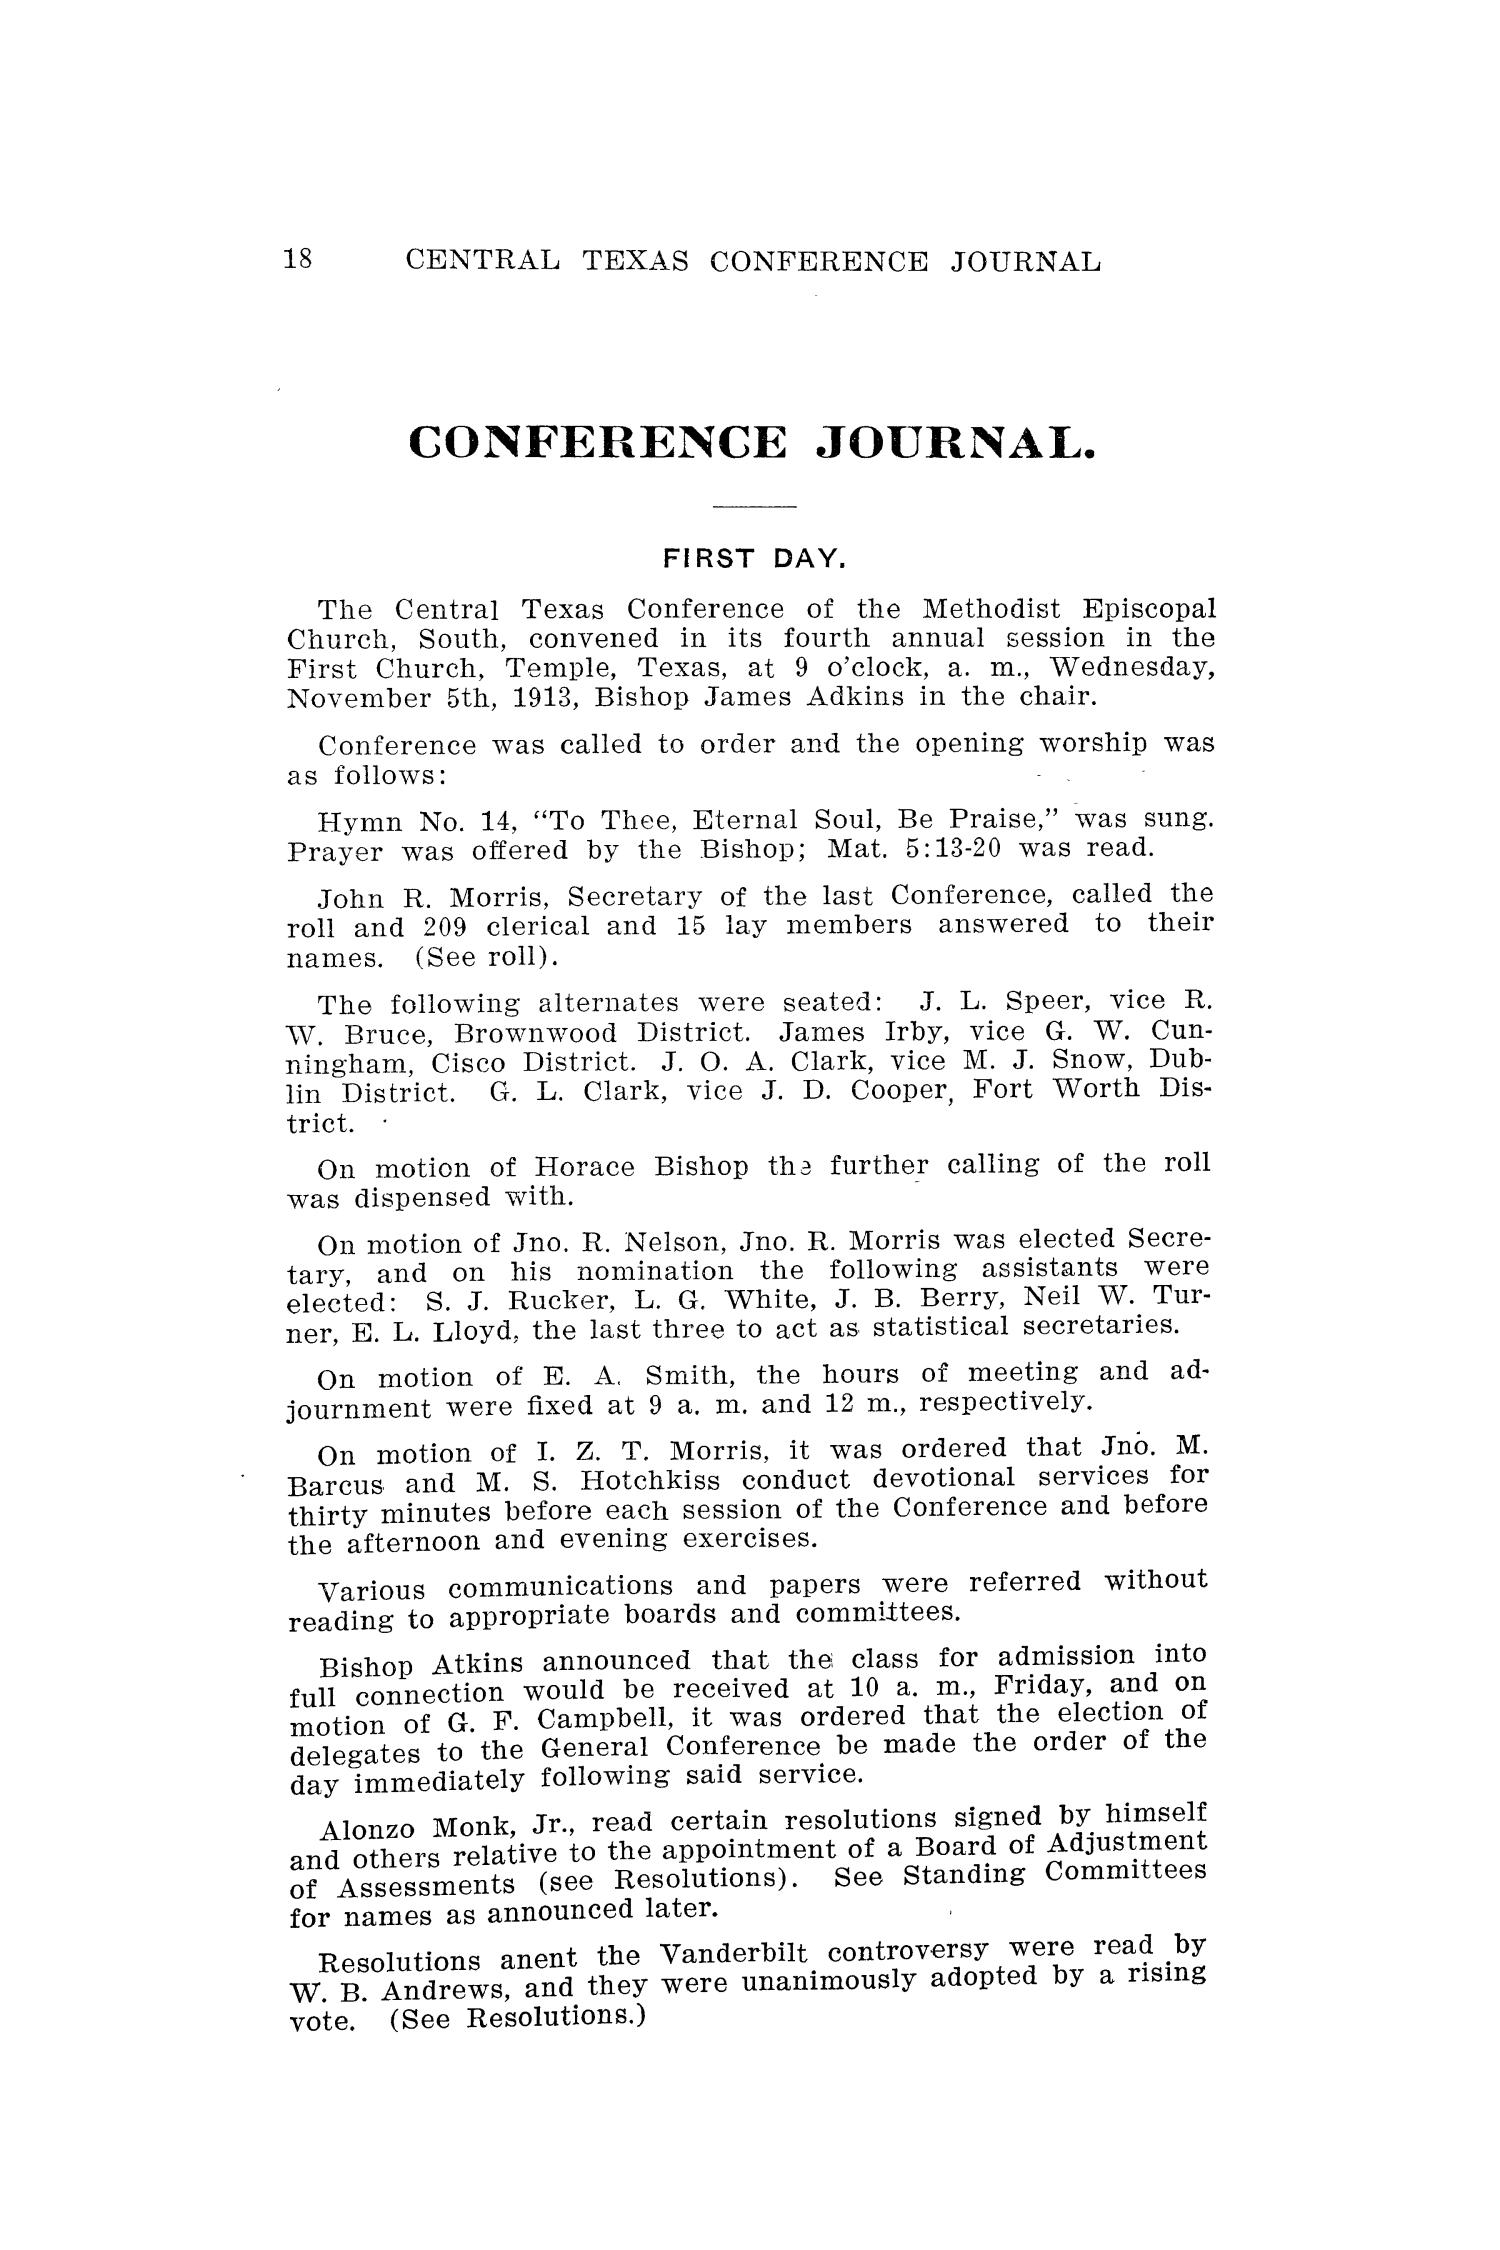 Journal of the Central Texas Conference, Fourth Annual Session, Methodist Episcopal Church South                                                                                                      18